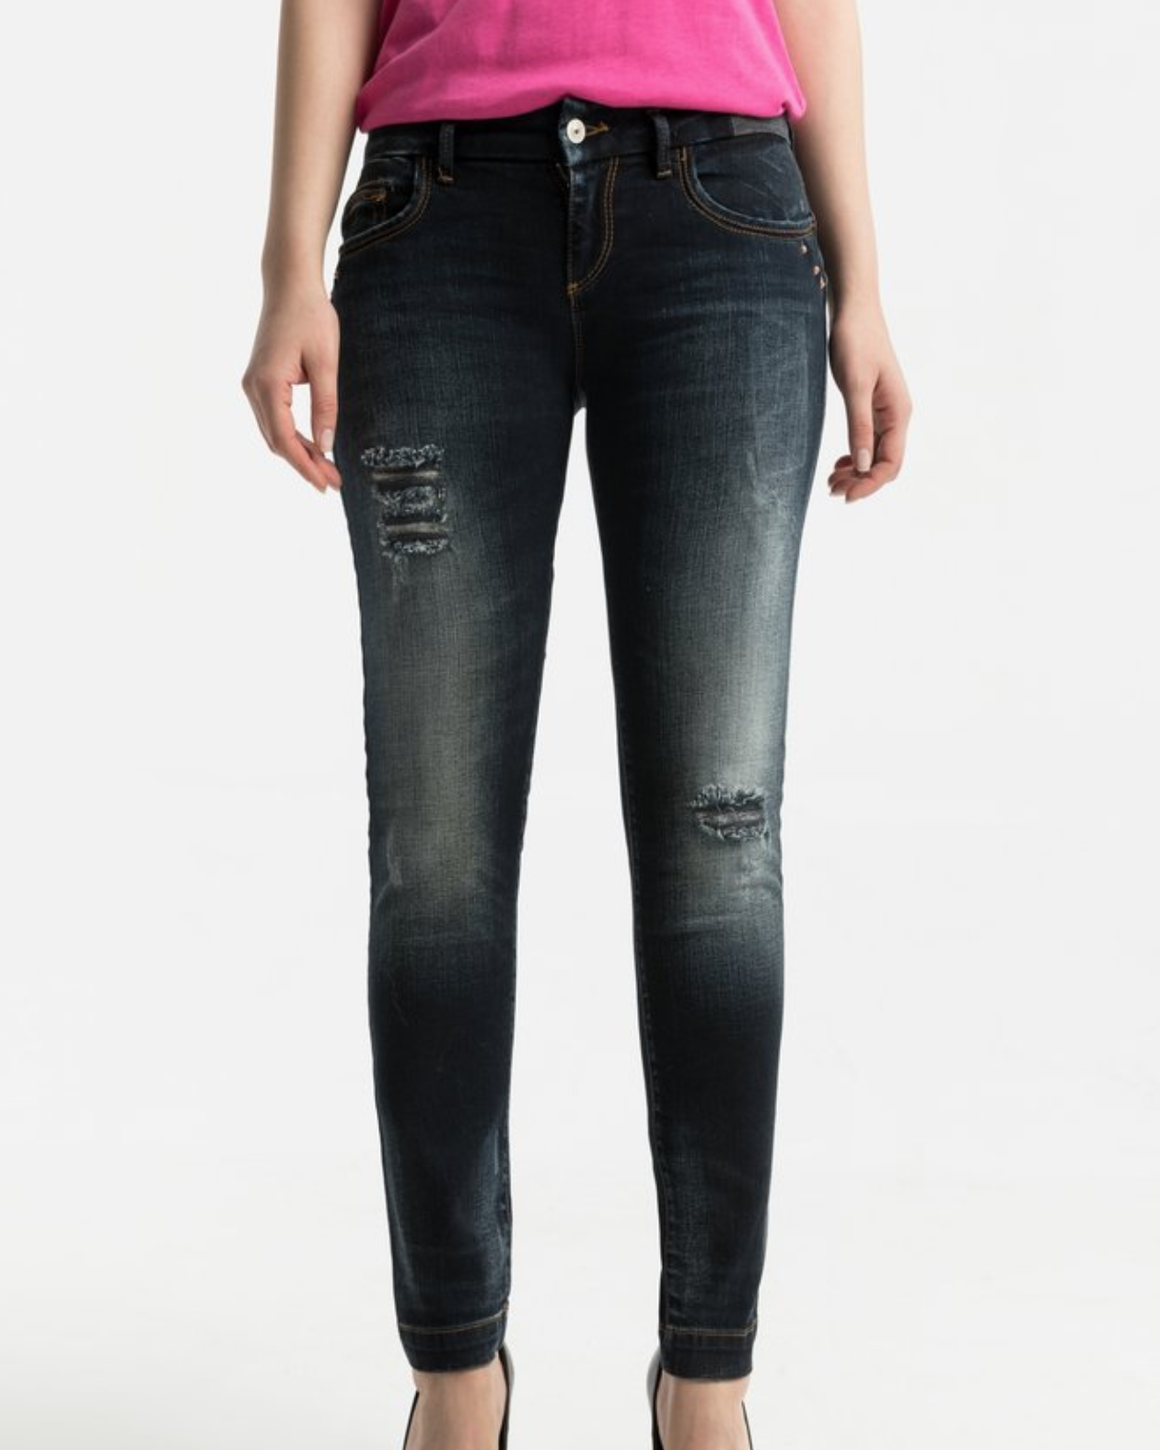 LTB Beccy Starbust Jean | Shop LTB Jeans at IKON in Arrowtown NZ